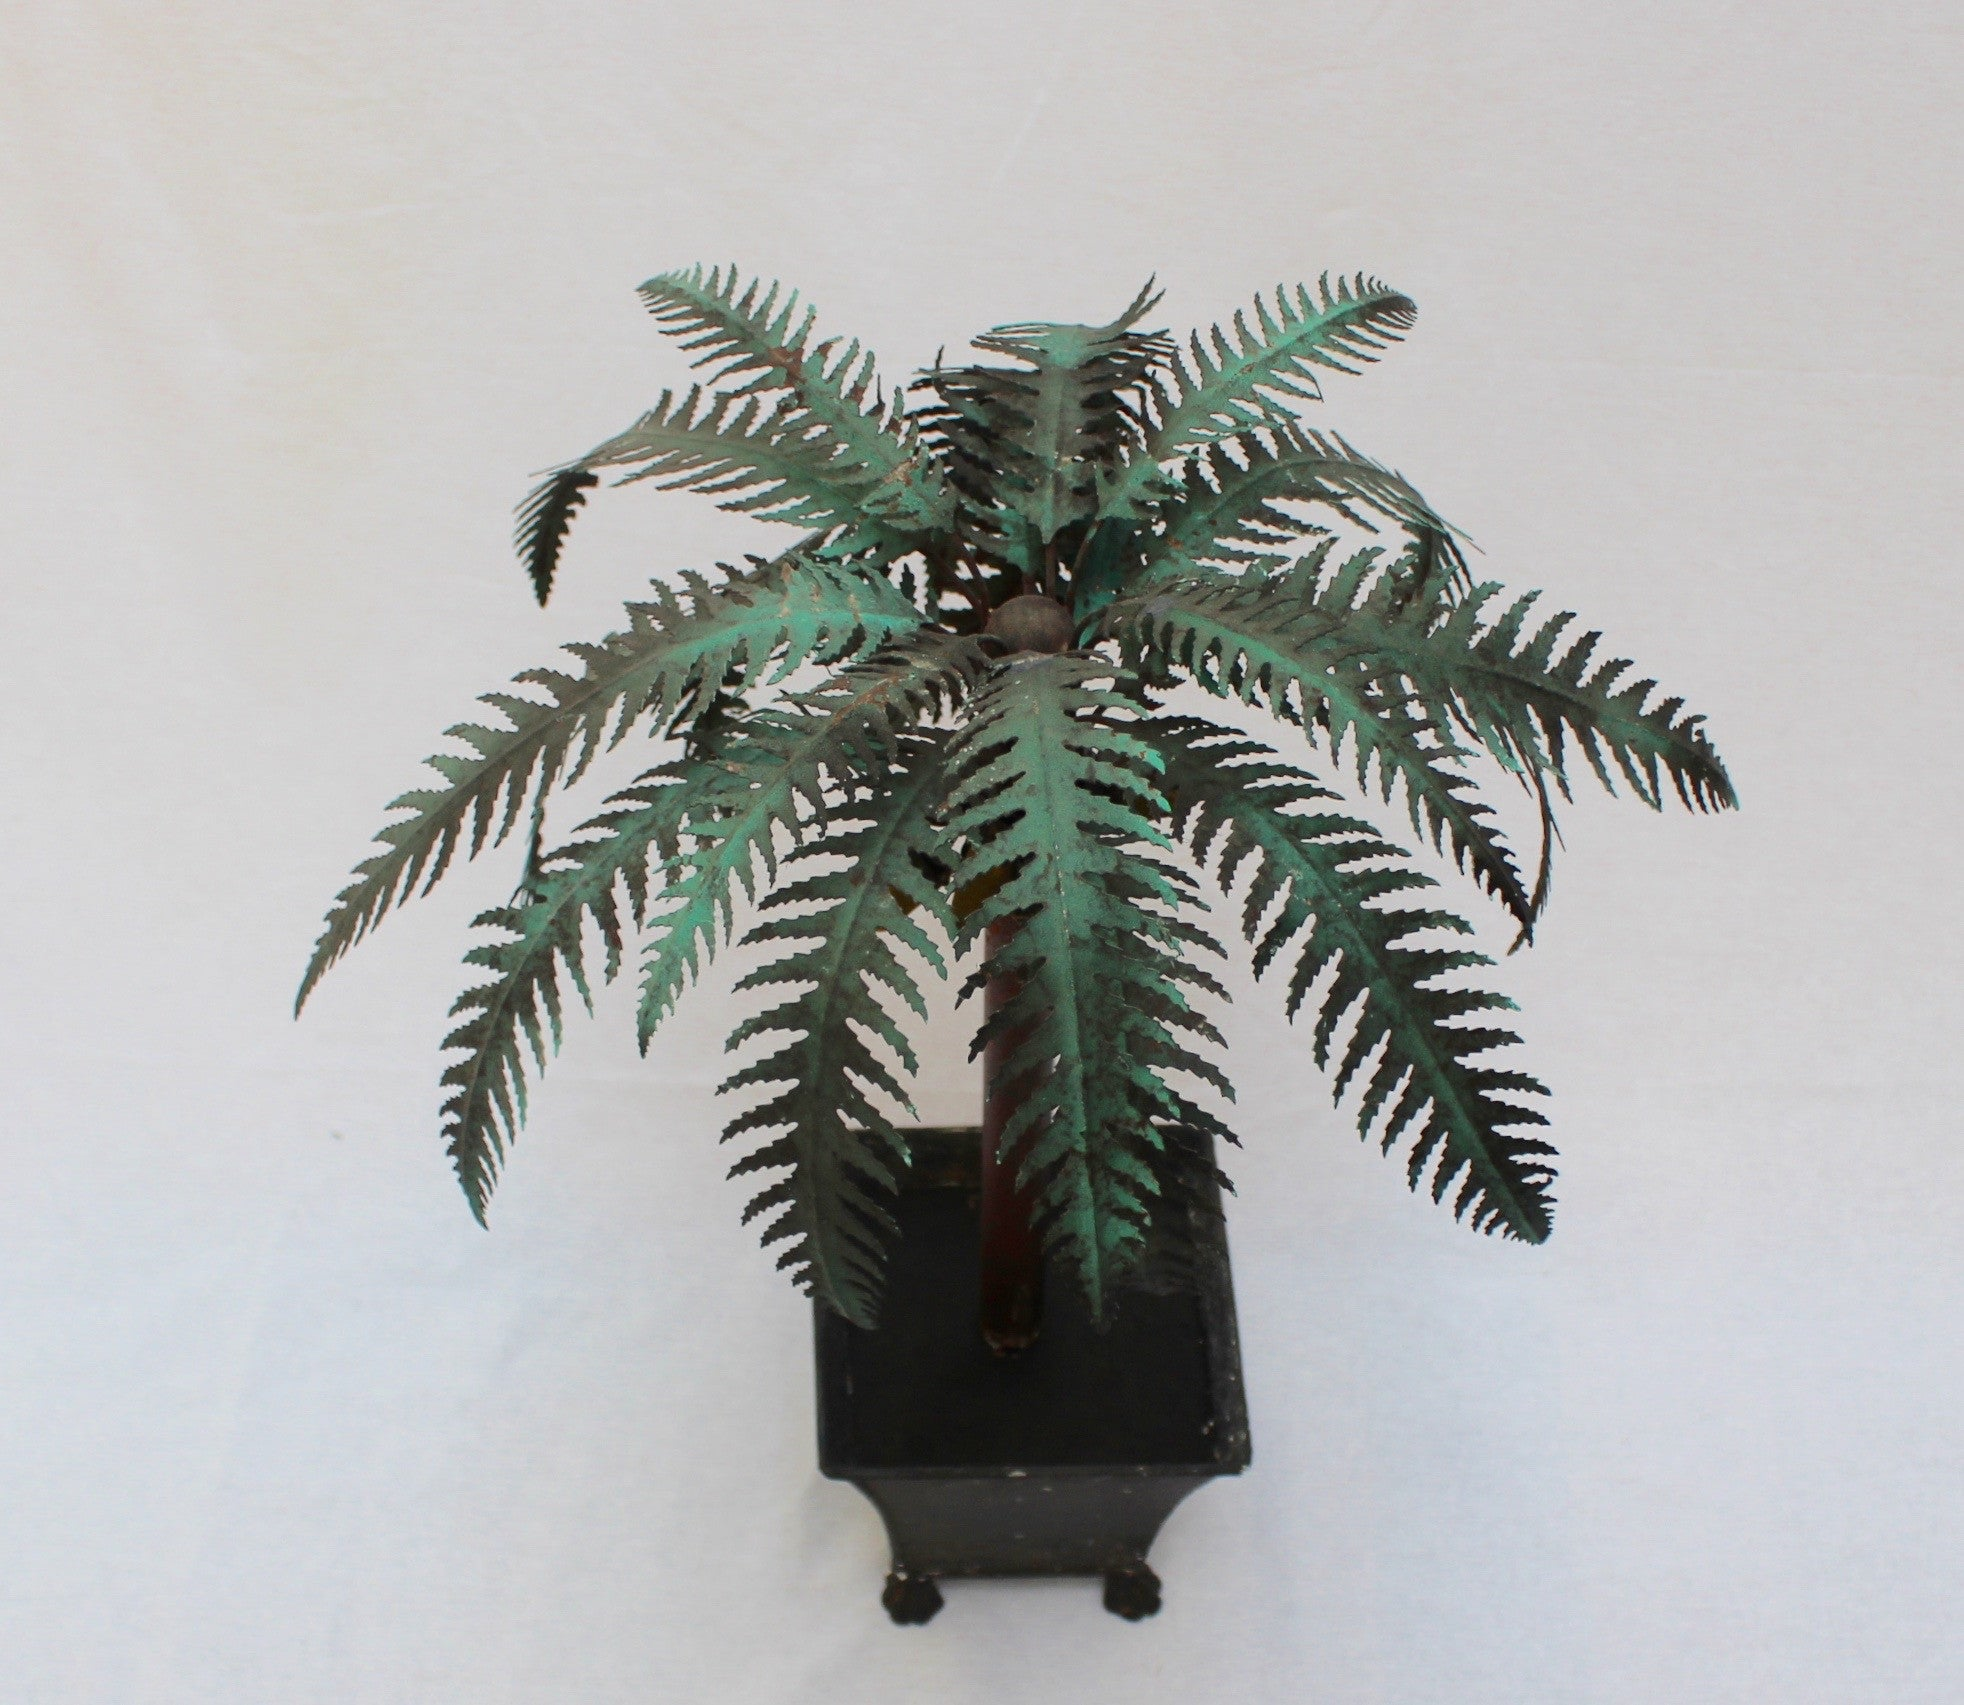 Pair of Painted Tin Palm Tree Ornaments (c. 1970s)